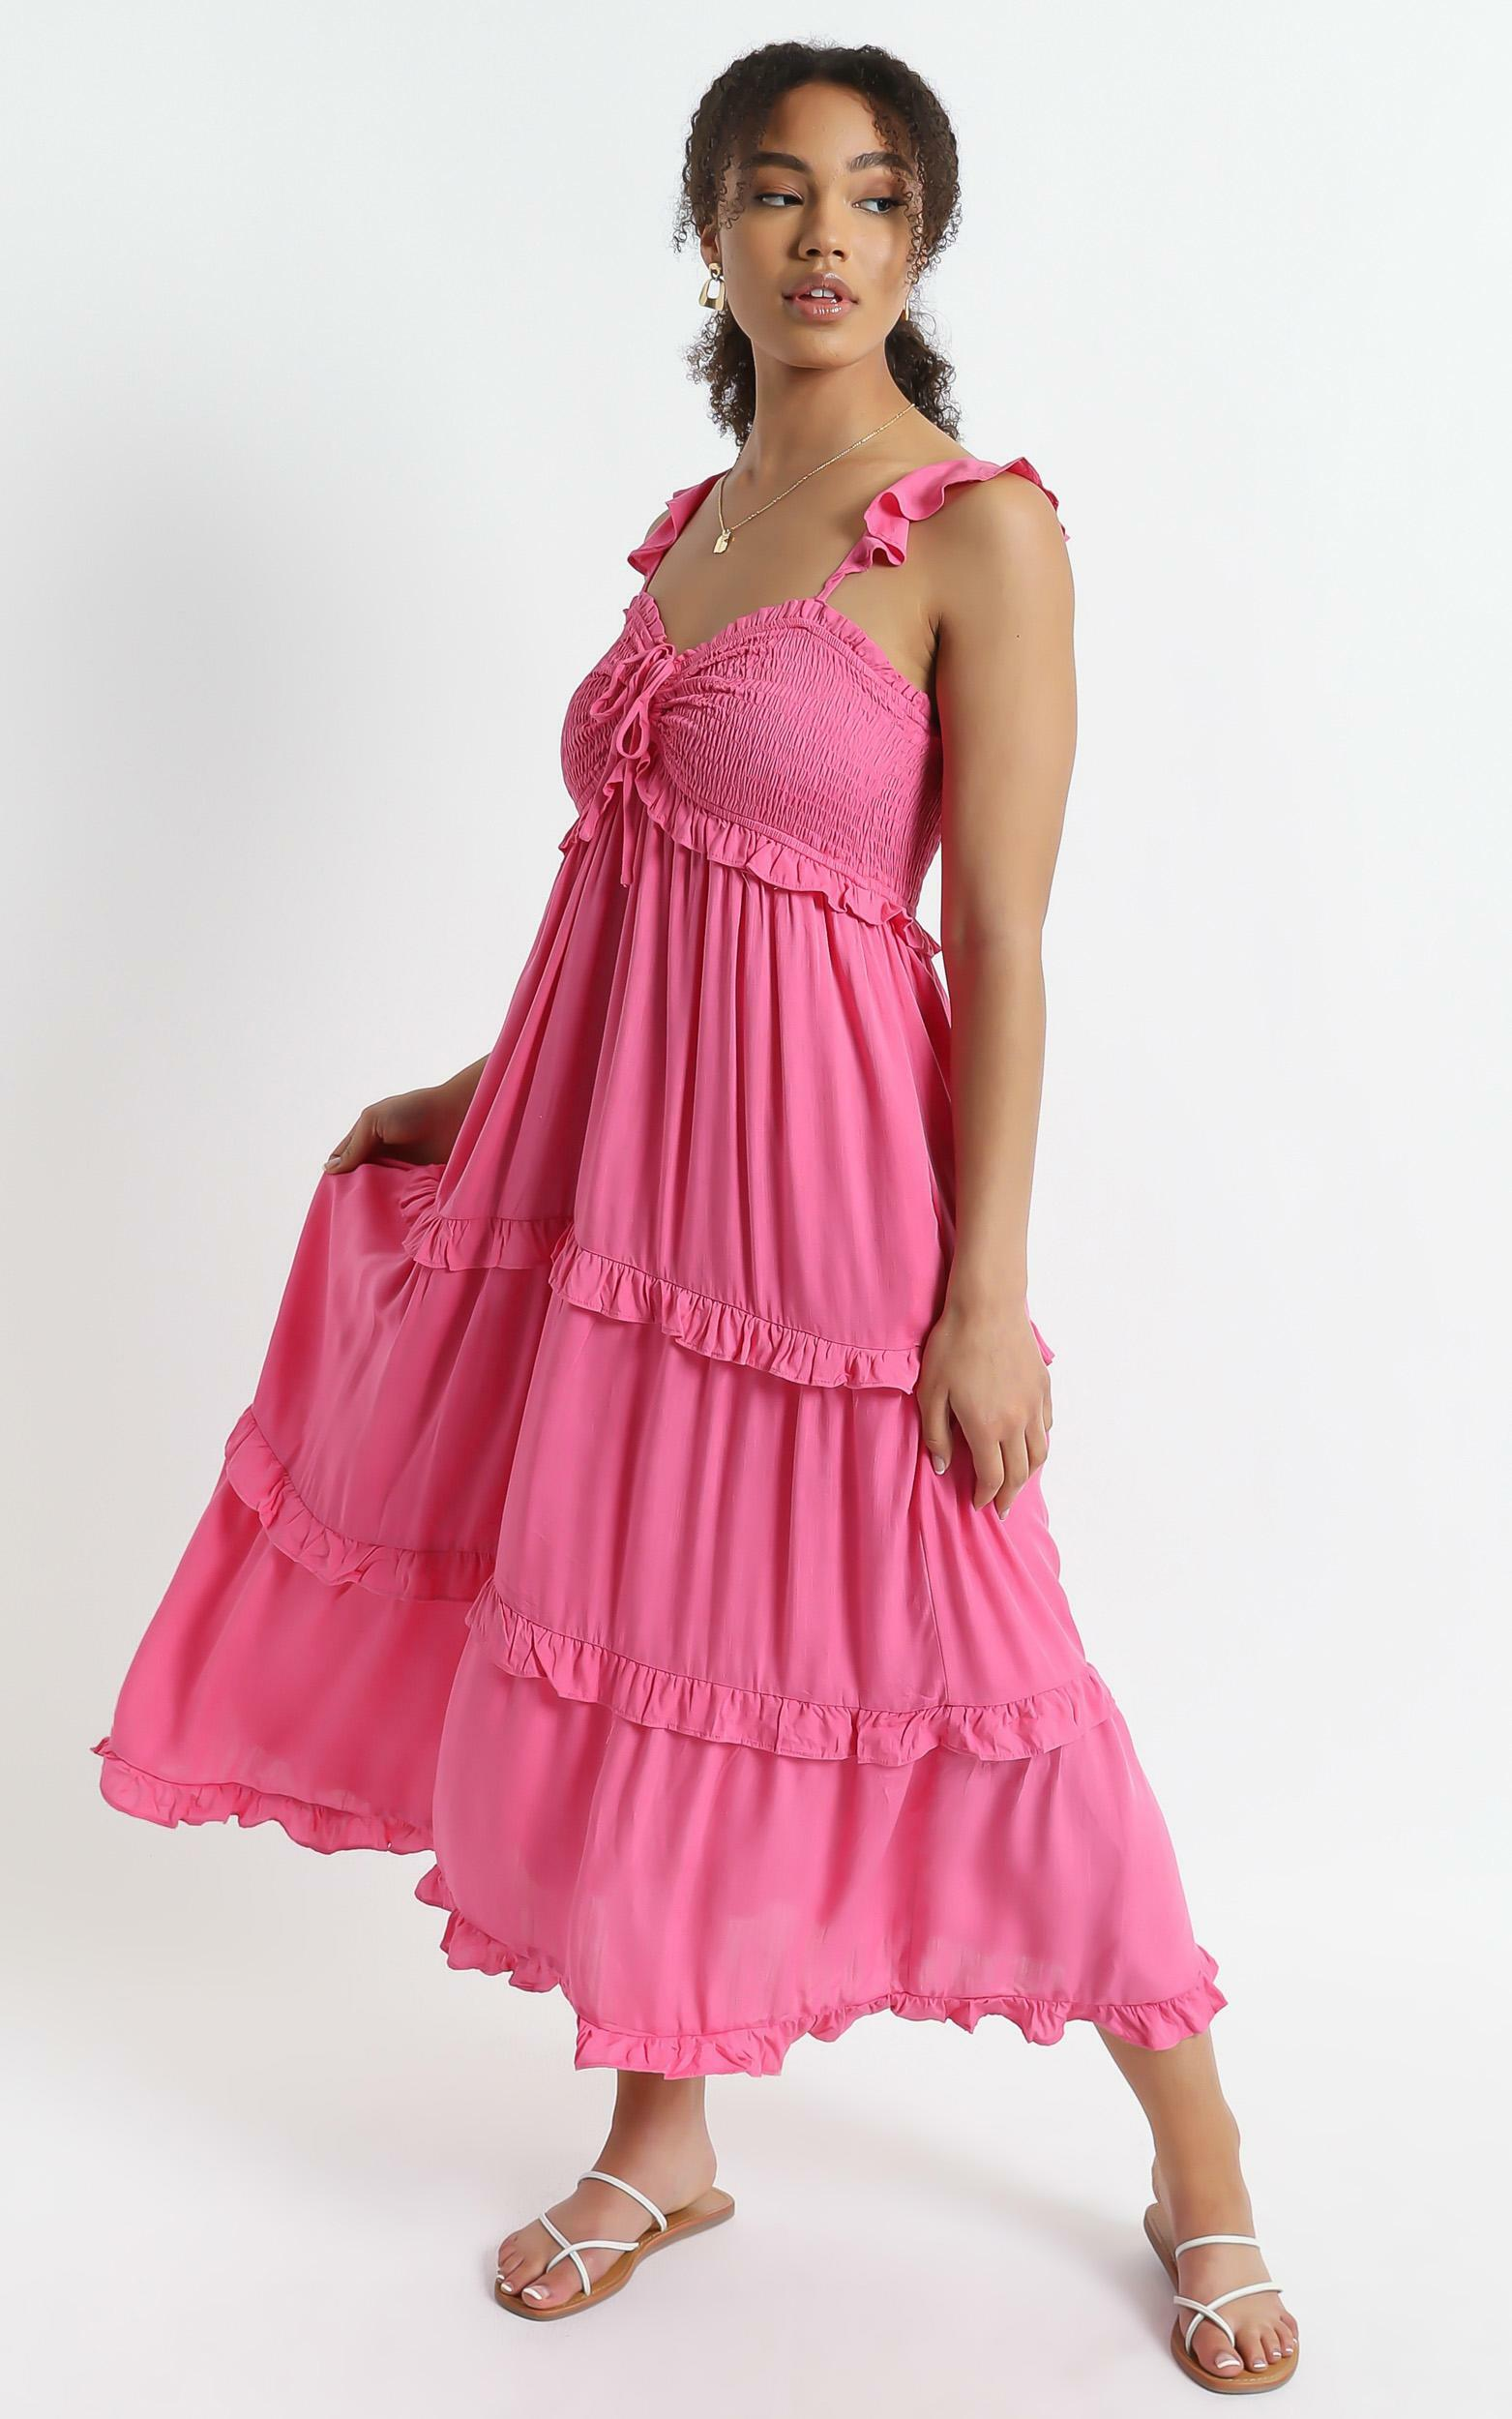 Good For The Soul Dress In Pink - 6 (XS), Pink, hi-res image number null